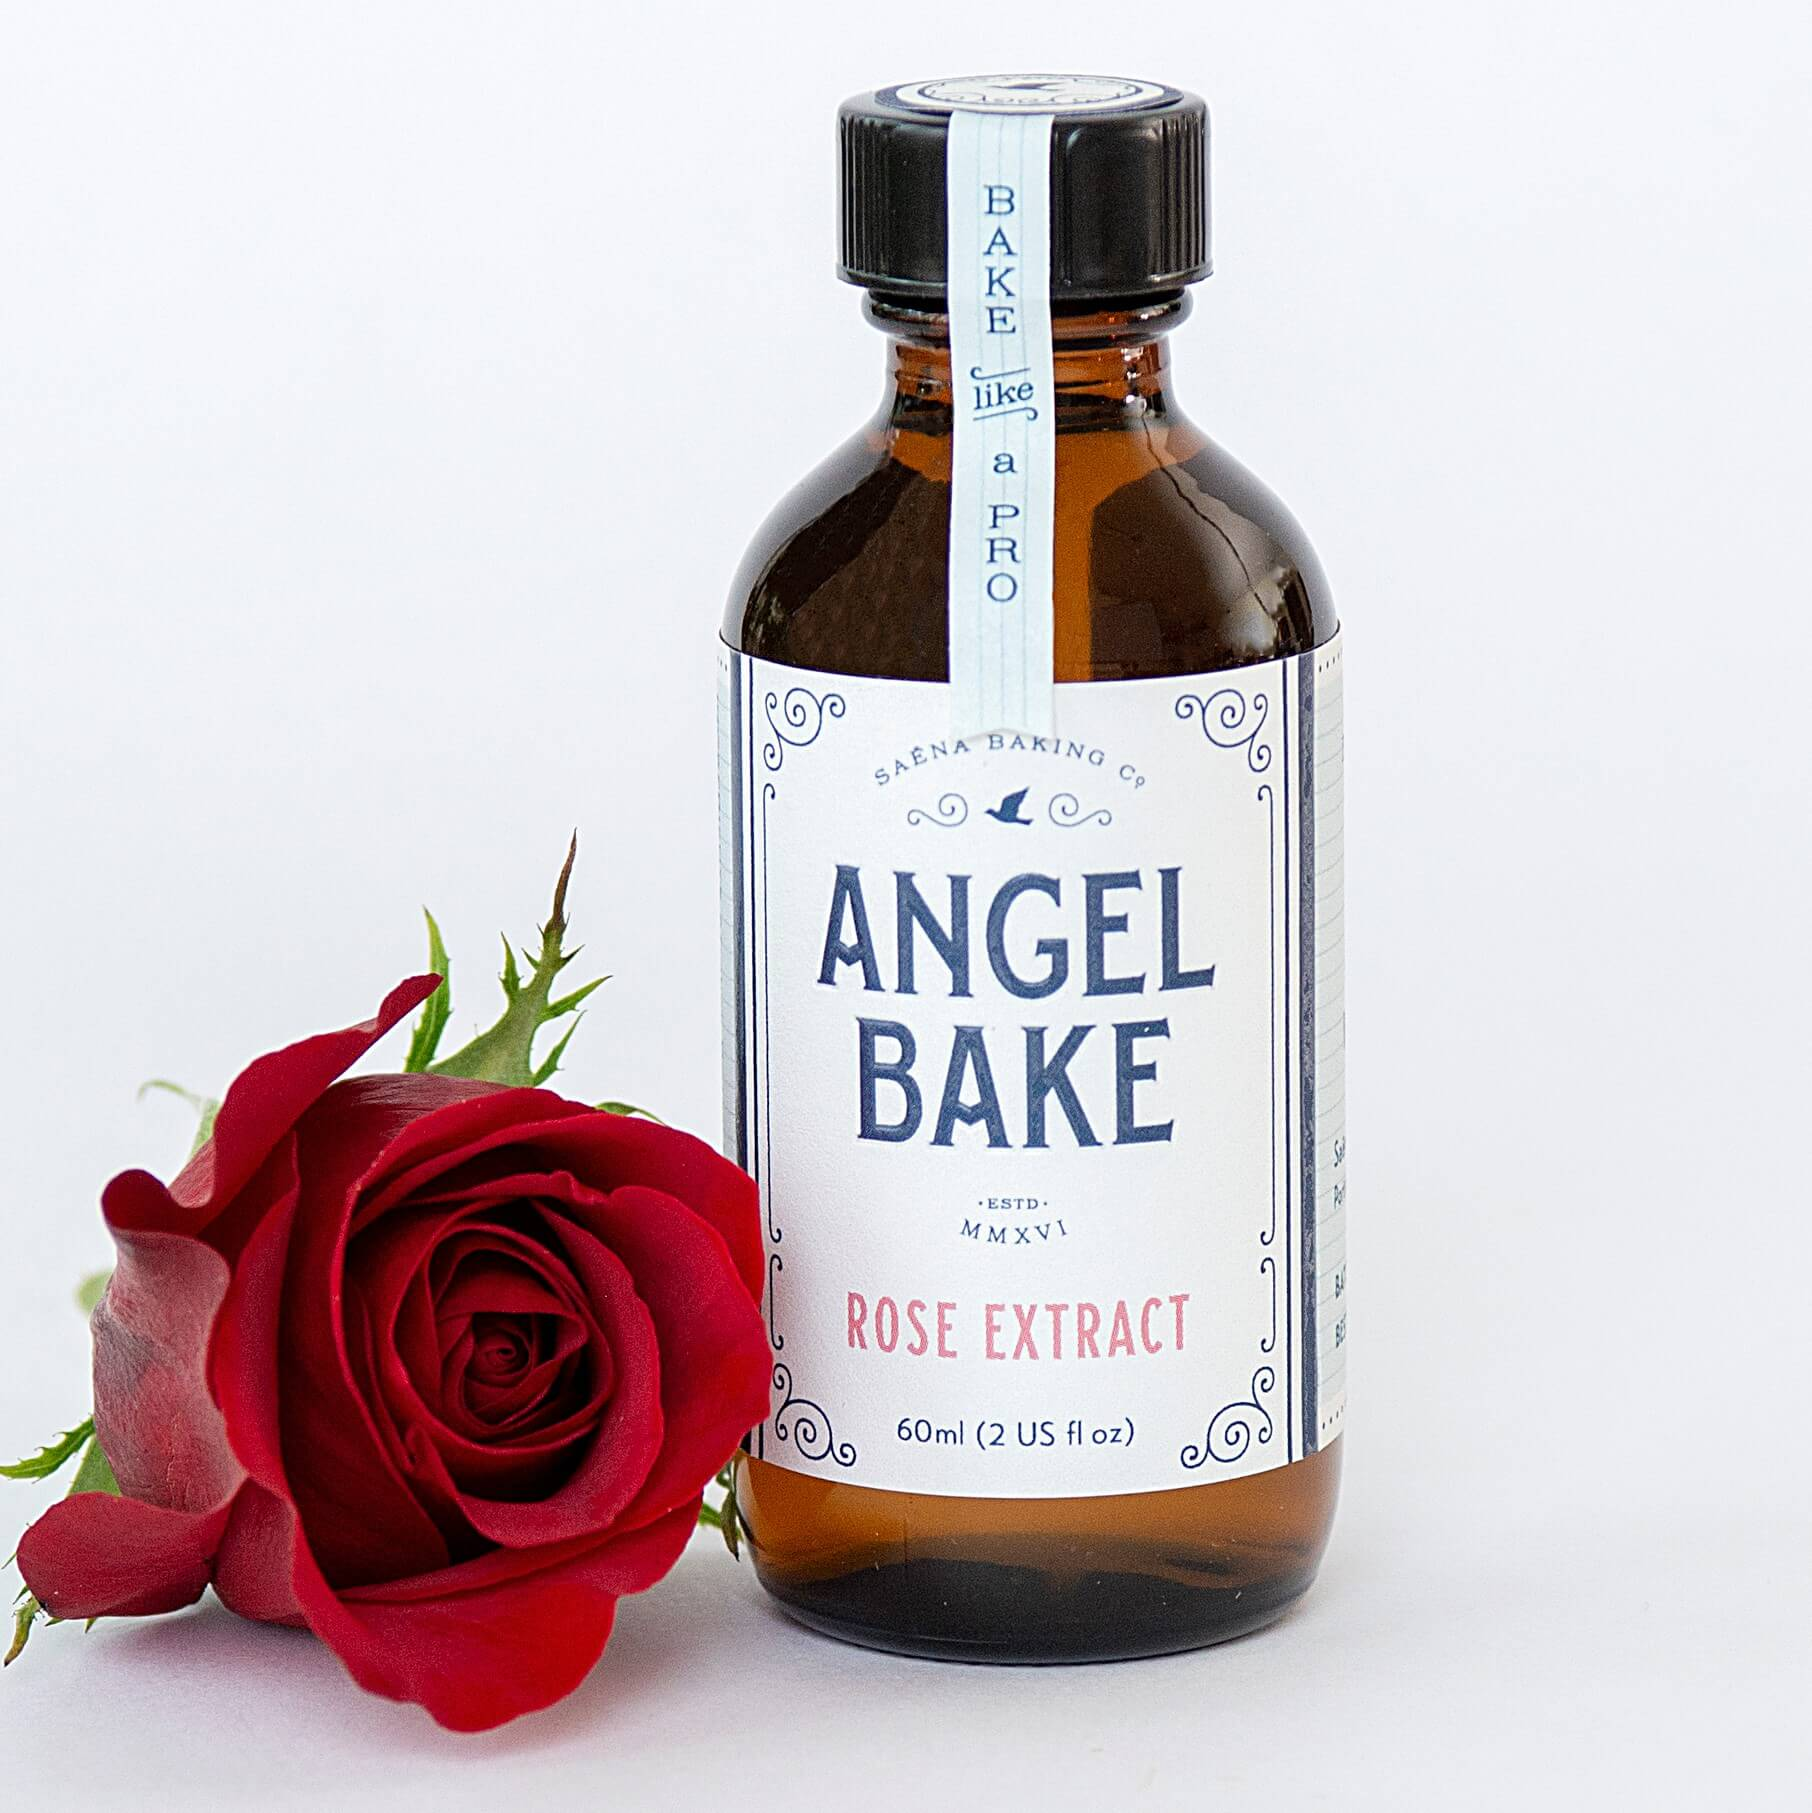 Angel Bake Rose Extract Food Flavoring